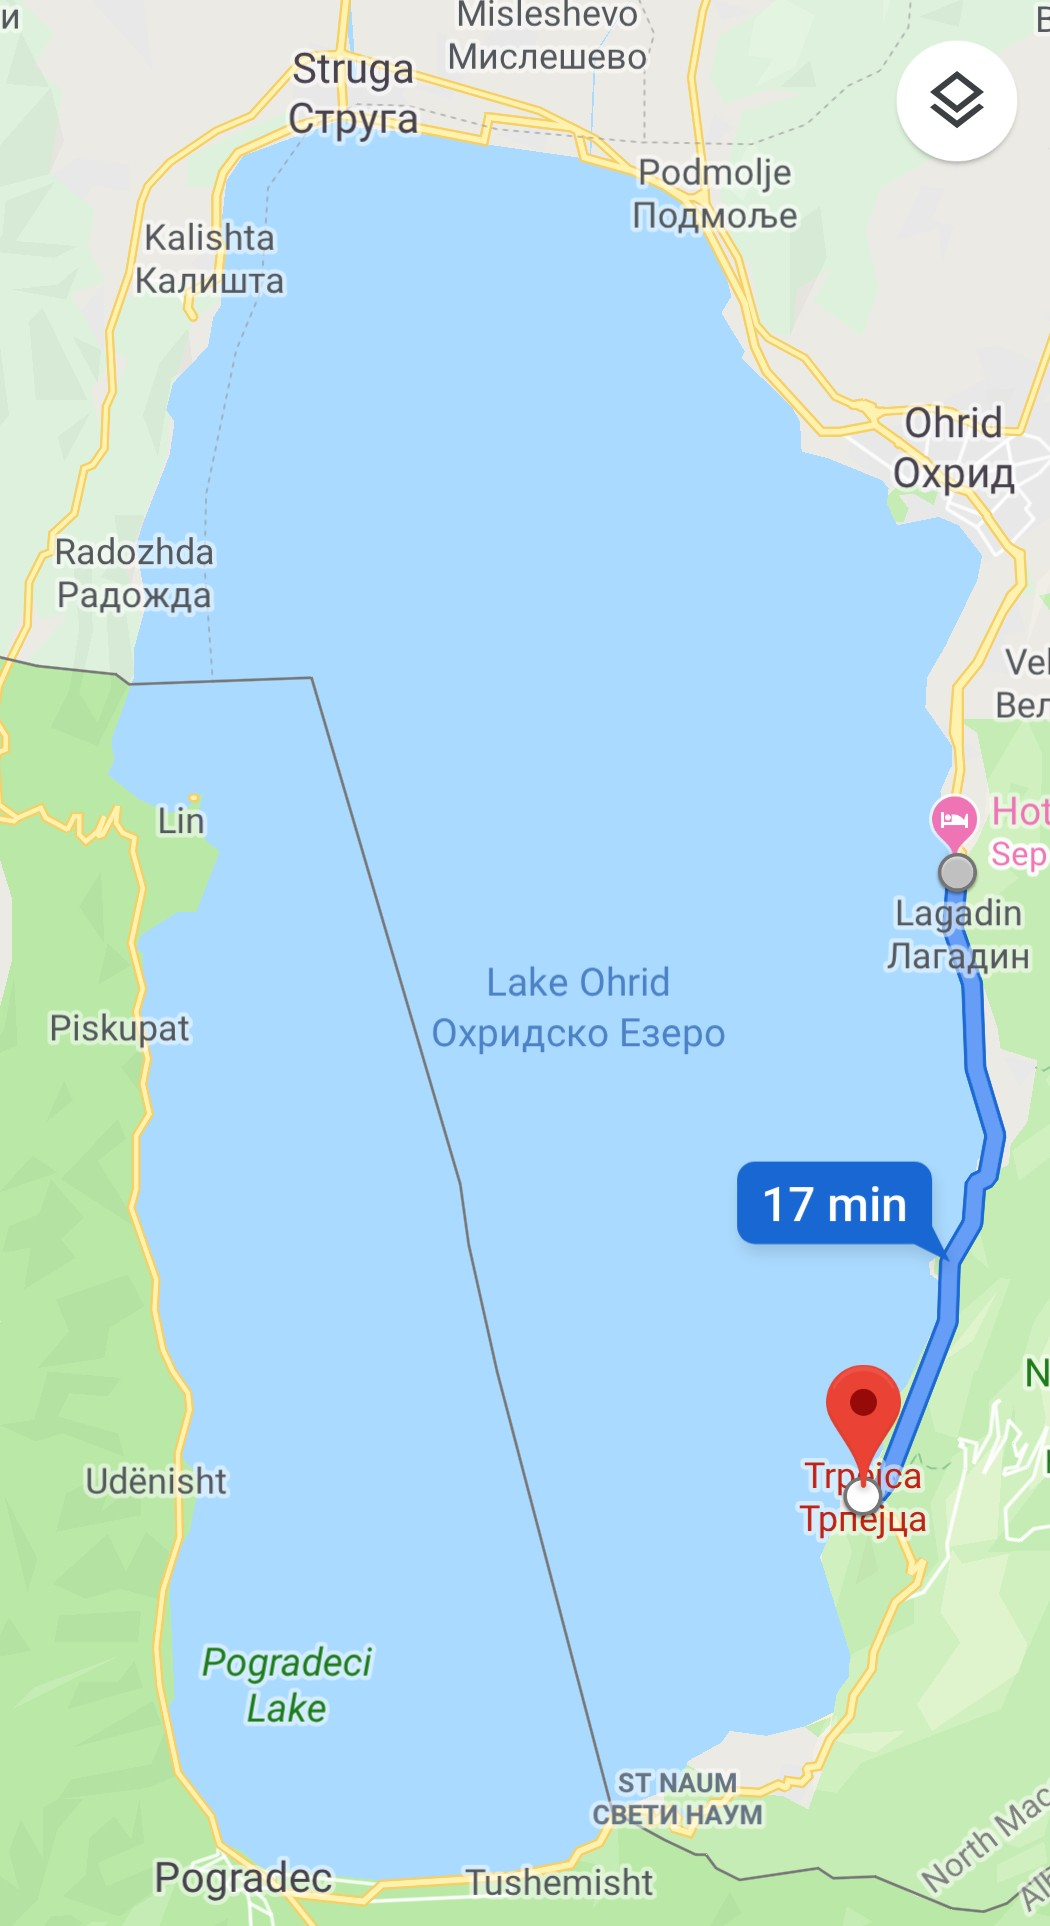 The line on the lake is the border between North Macedonia and Albania